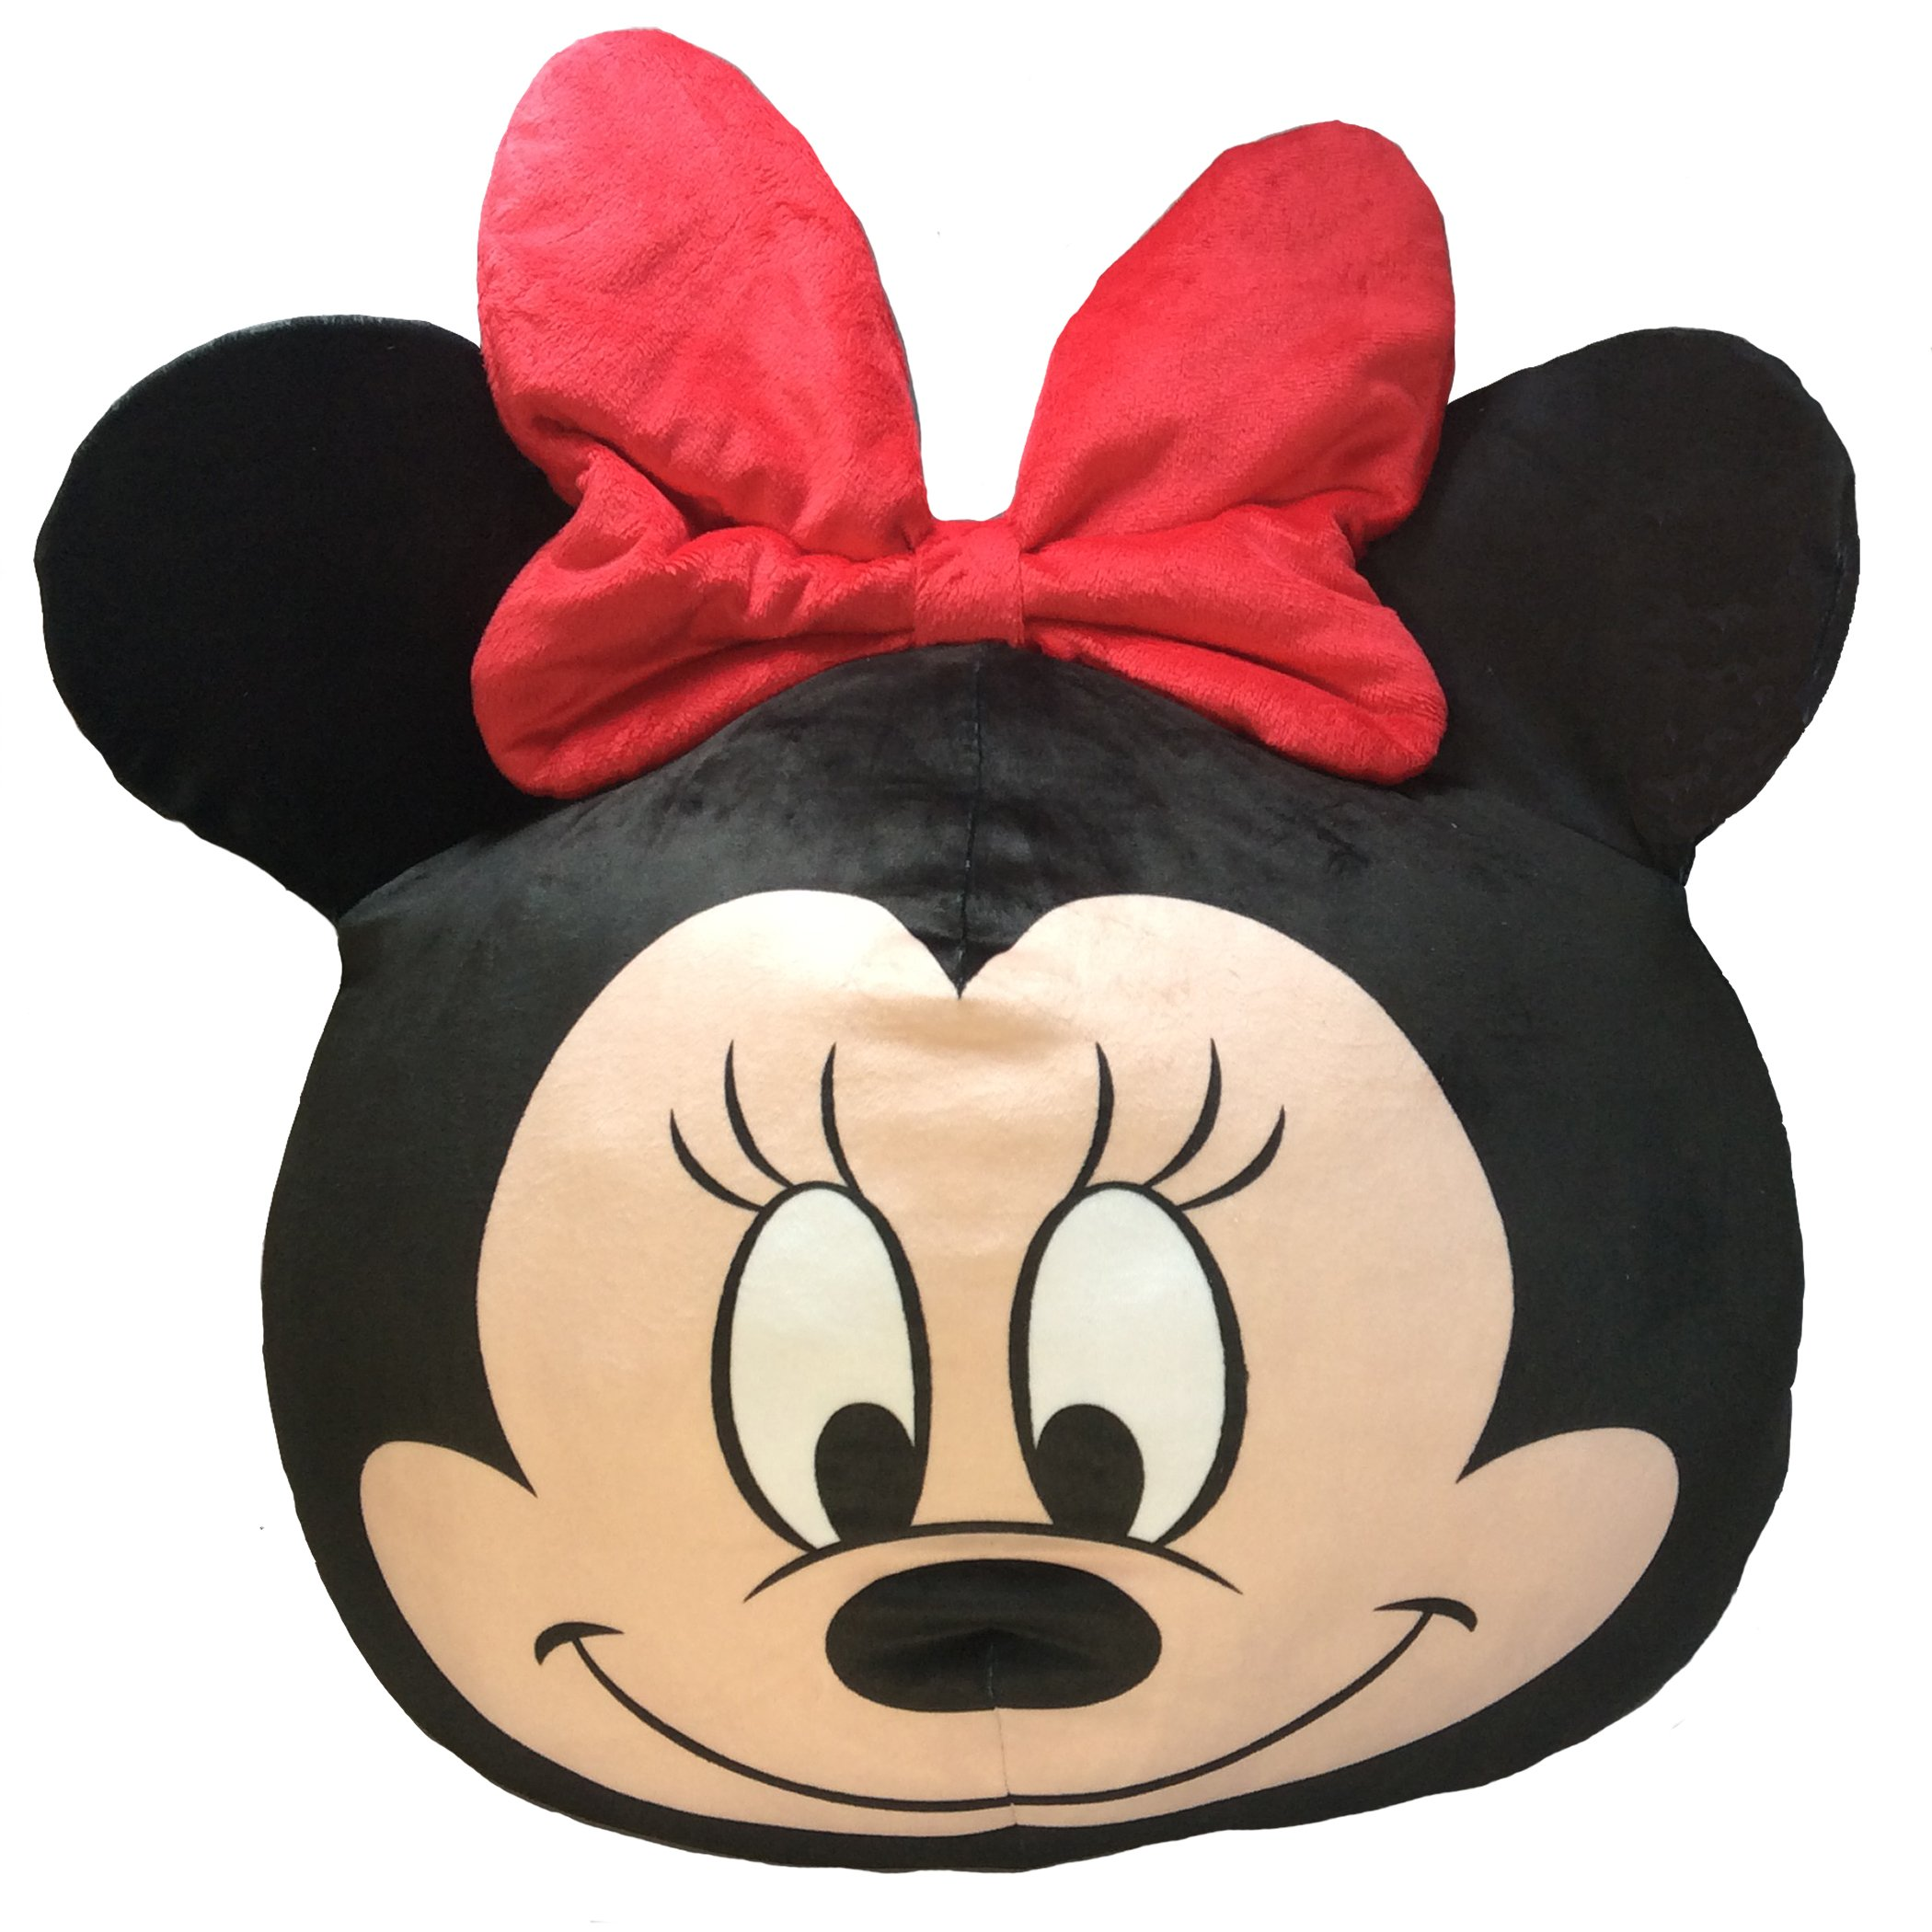 Disney's Minnie Mouse, ''Minnie Clouds'' 3D Ultra Stretch Pillow, 11'' Round, Multi Color by The Northwest Company